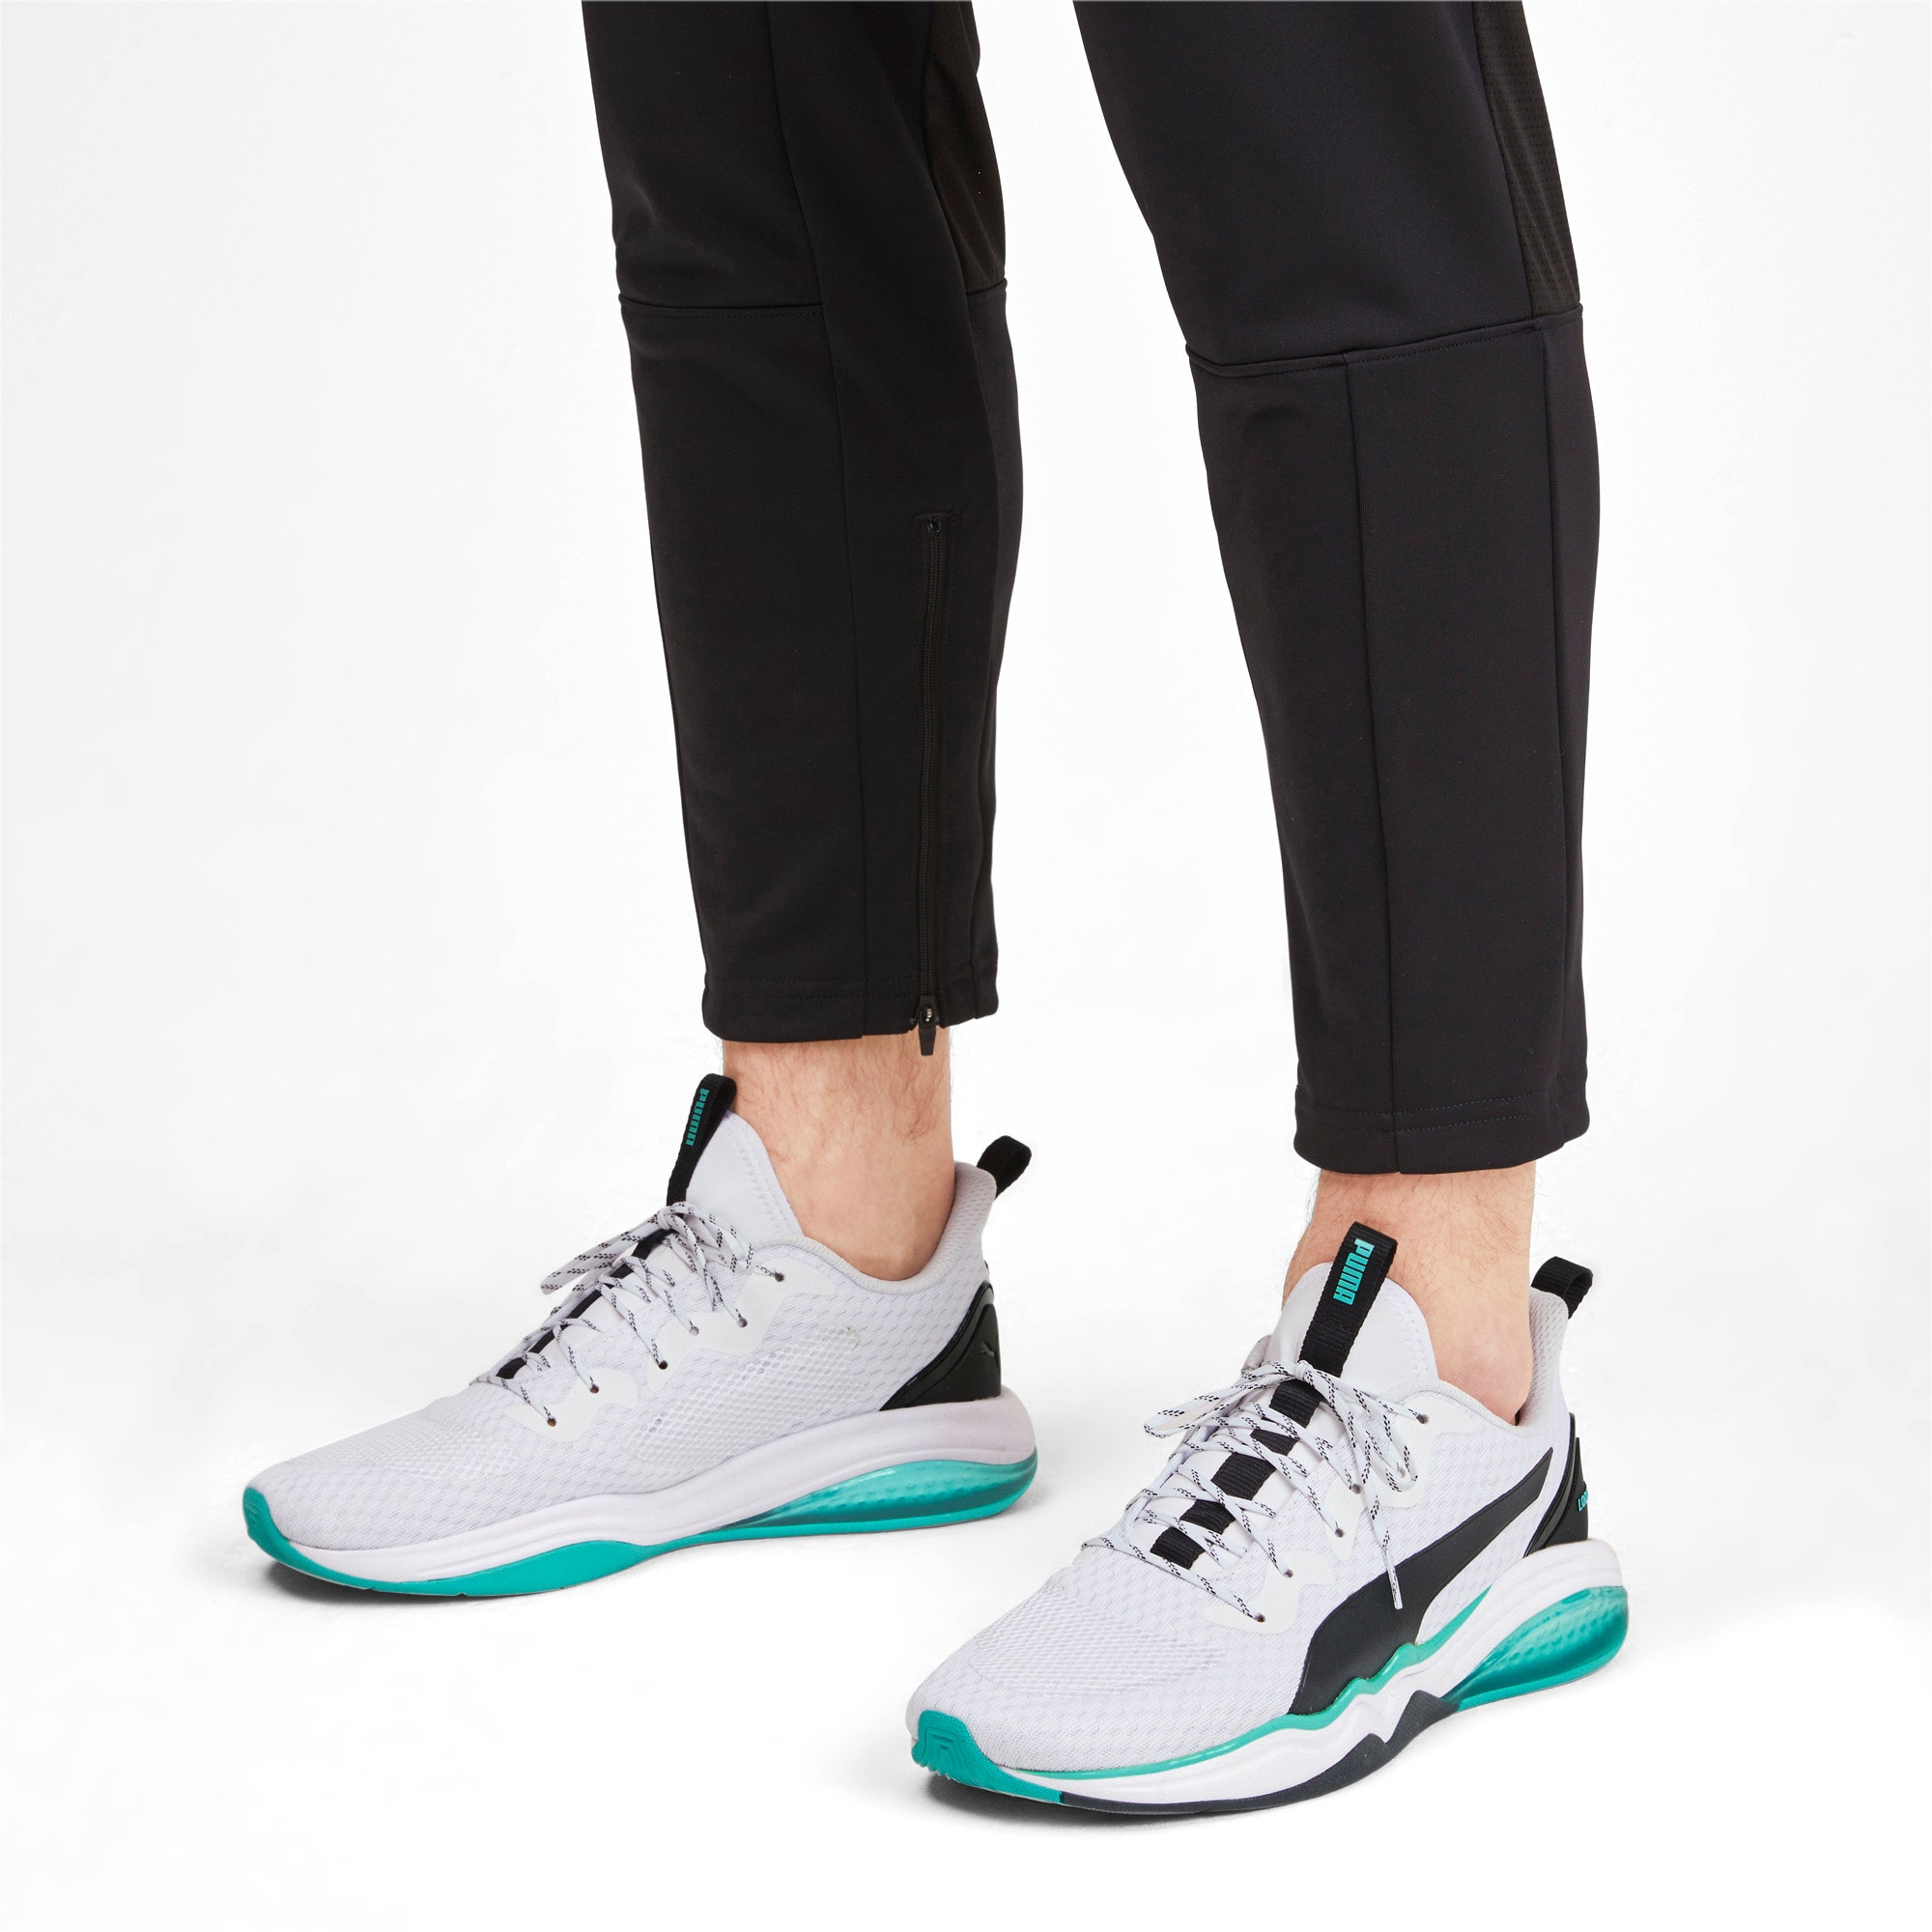 Thumbnail 2 of LQDCELL Tension Men's Training Shoes, Puma White-Blue Turquoise, medium-IND